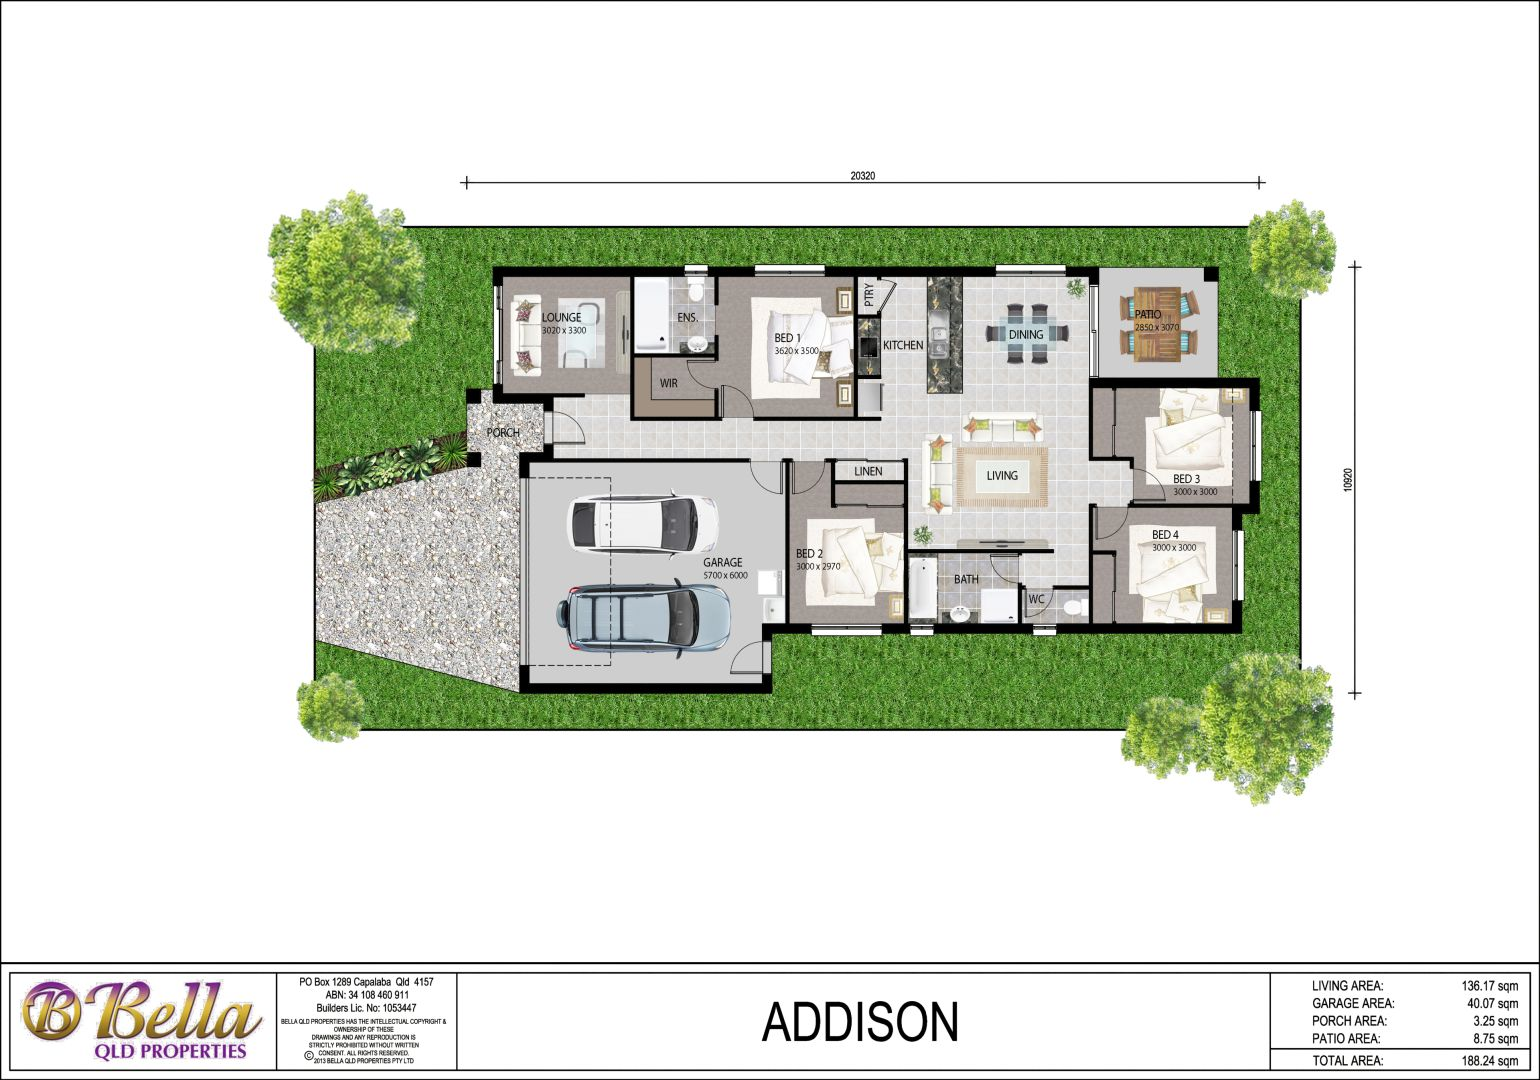 Rosewood Green - BellaQLD Lot 42 Addison Plan